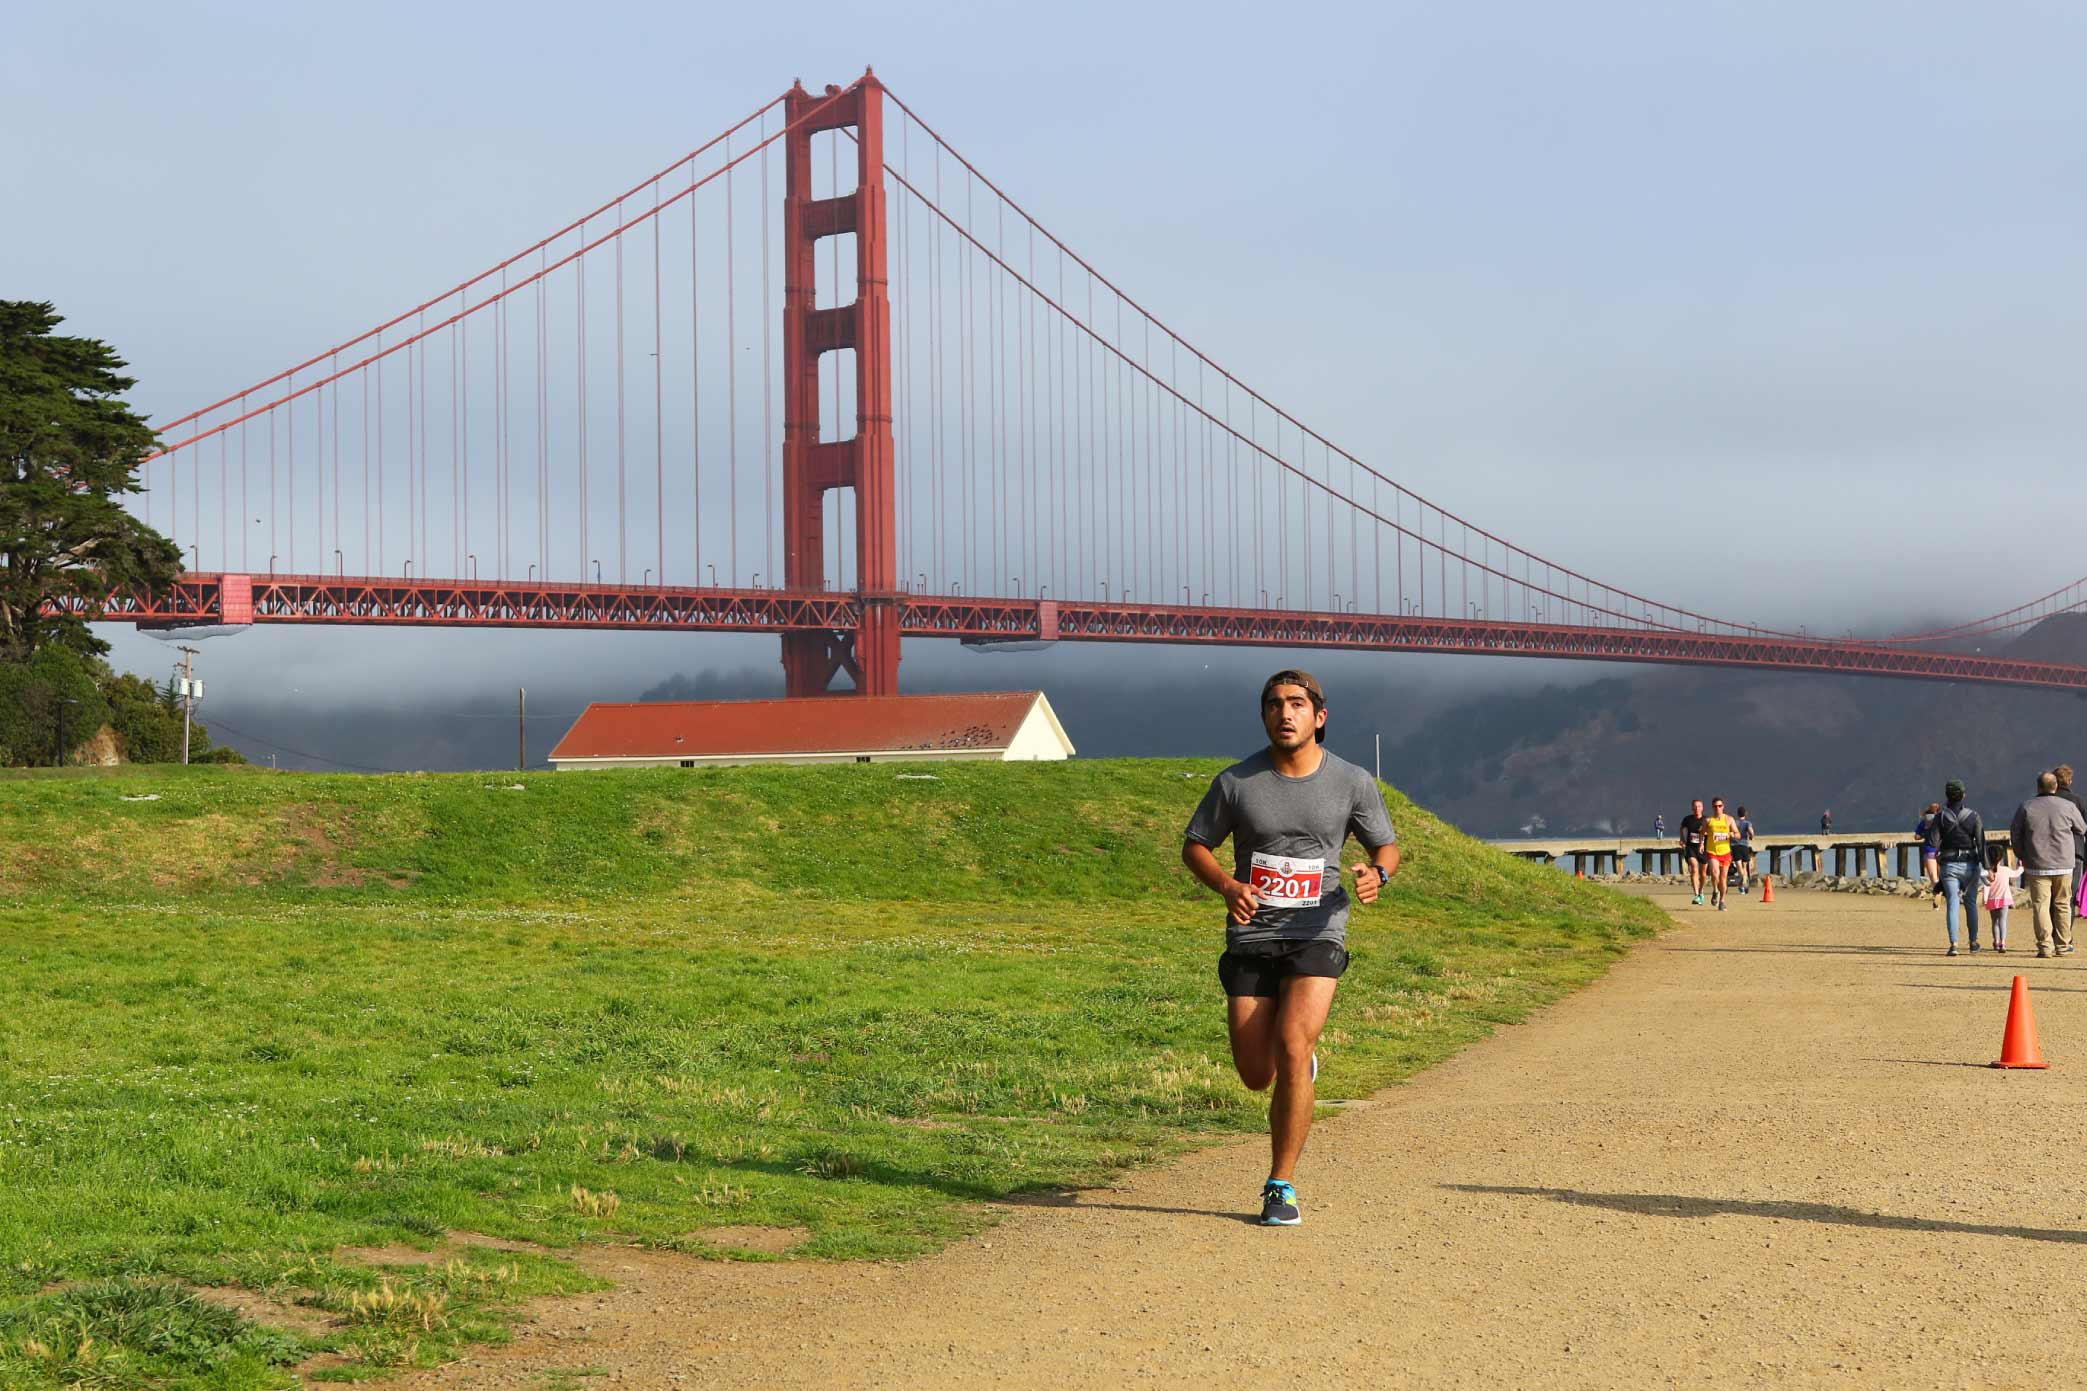 Courage Over Cancer 5K Run/Walk - August 11th, 2019San Francisco, CA